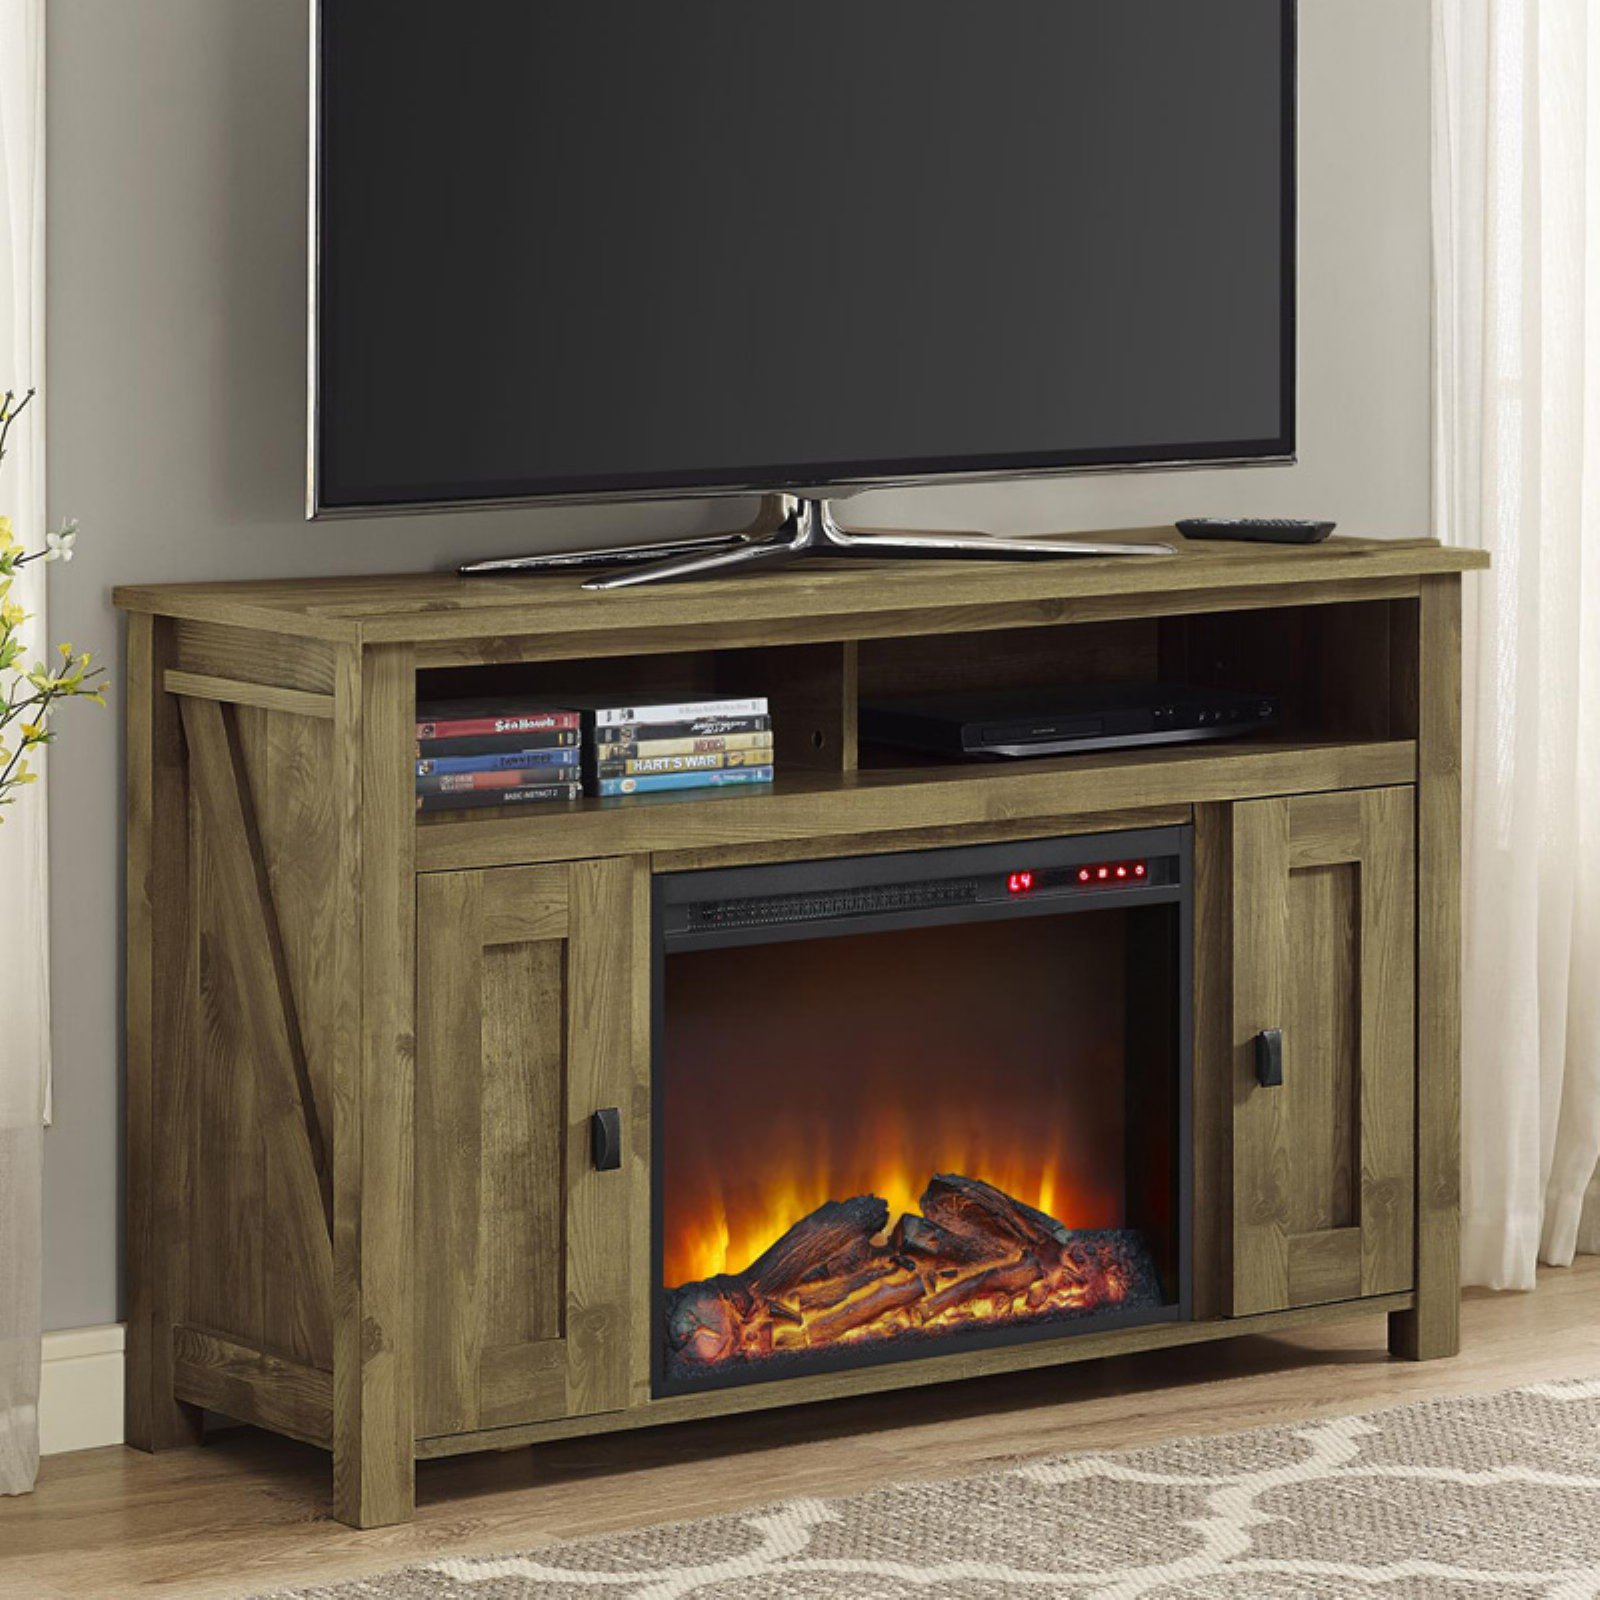 Farmington Electric Fireplace Tv Console For Tvs Multiple Colors And Sizes Com